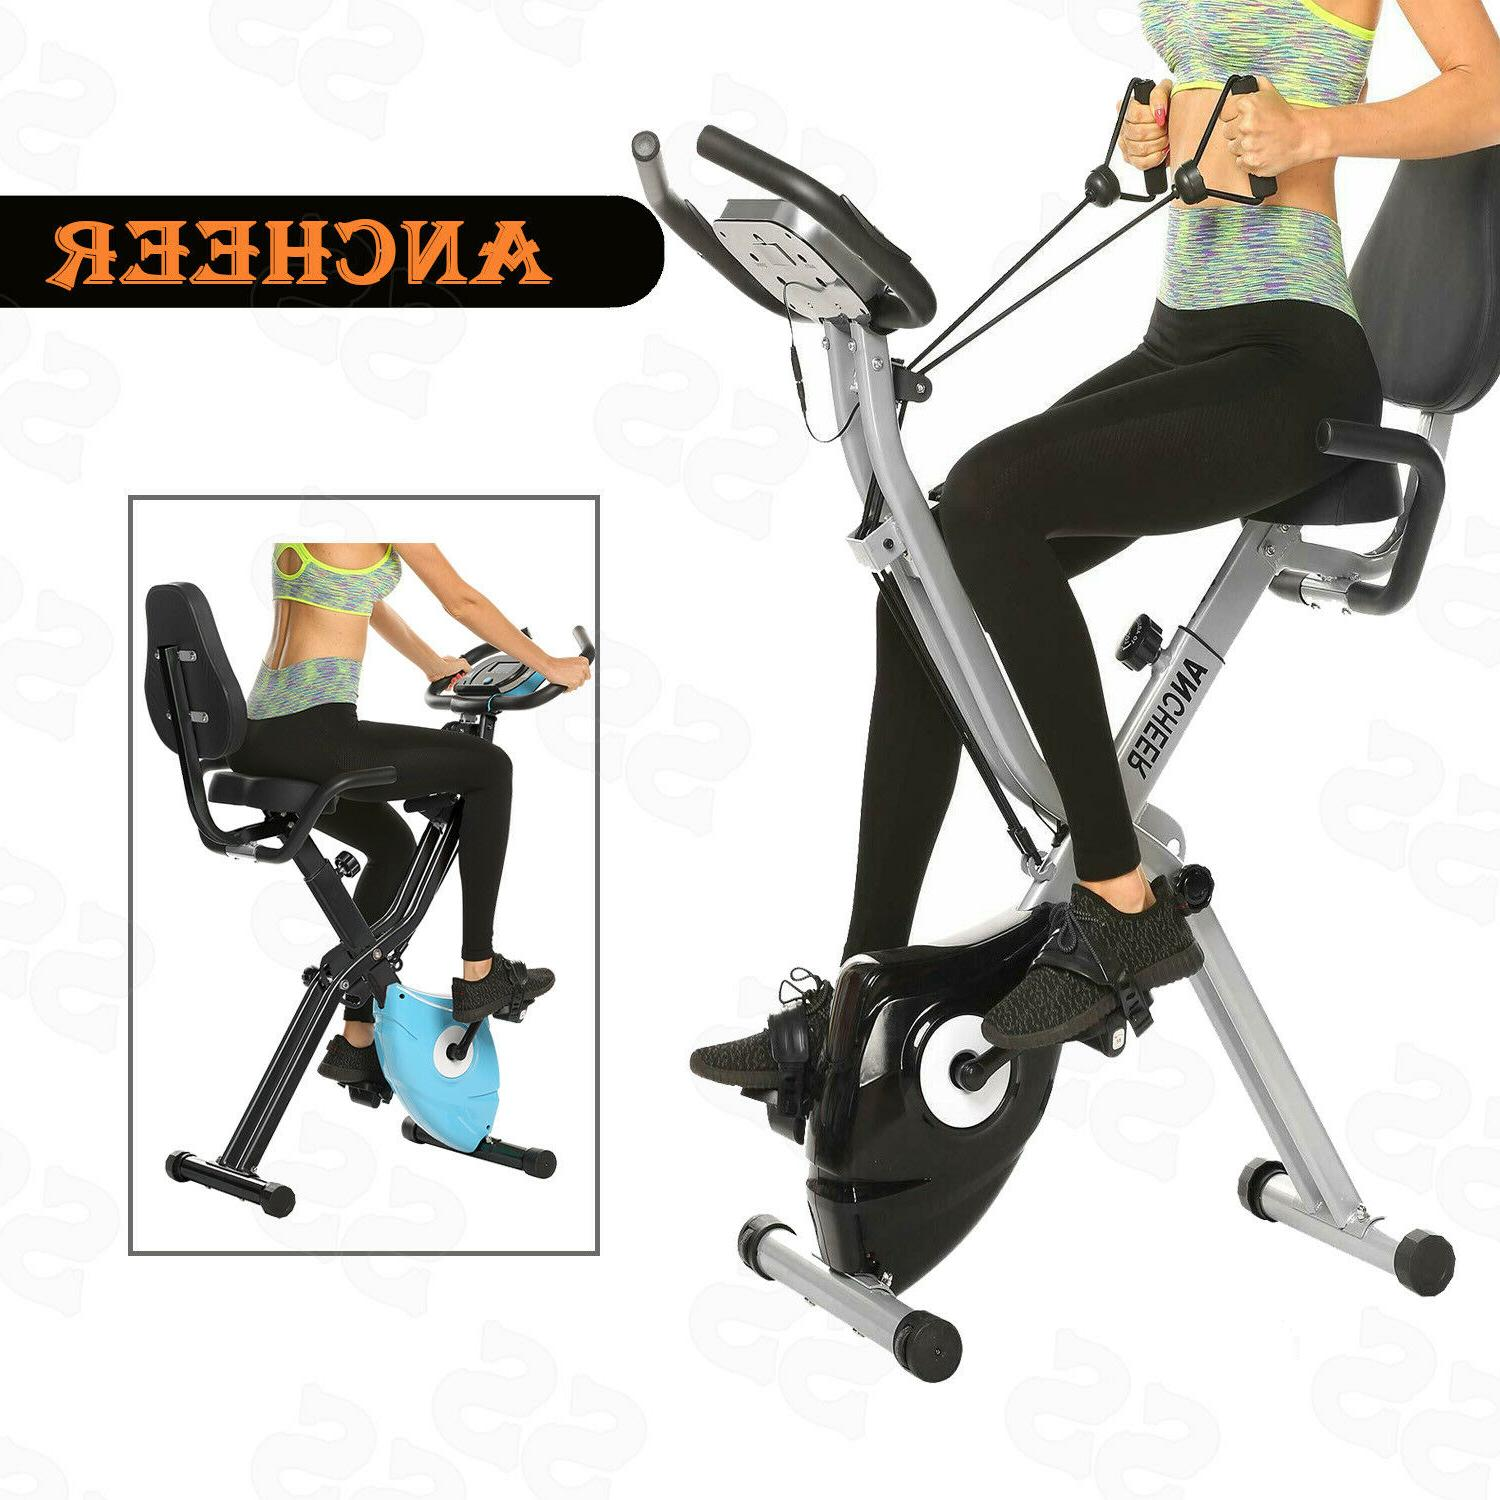 ANCHEER 2in1 Folding Bike Slim Cycling Stationary